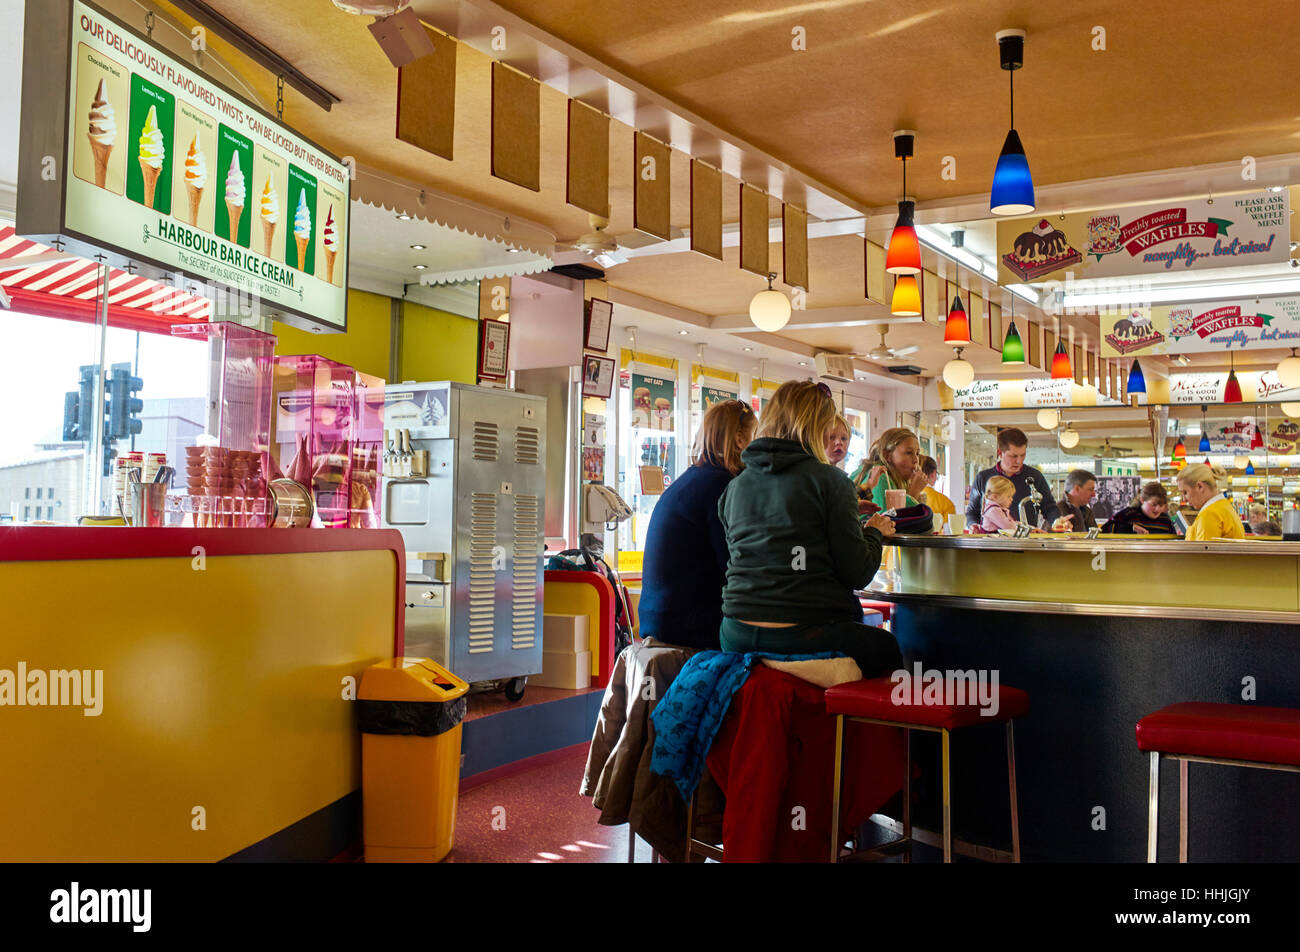 Harbour Bar in Scarborough - Stock Image